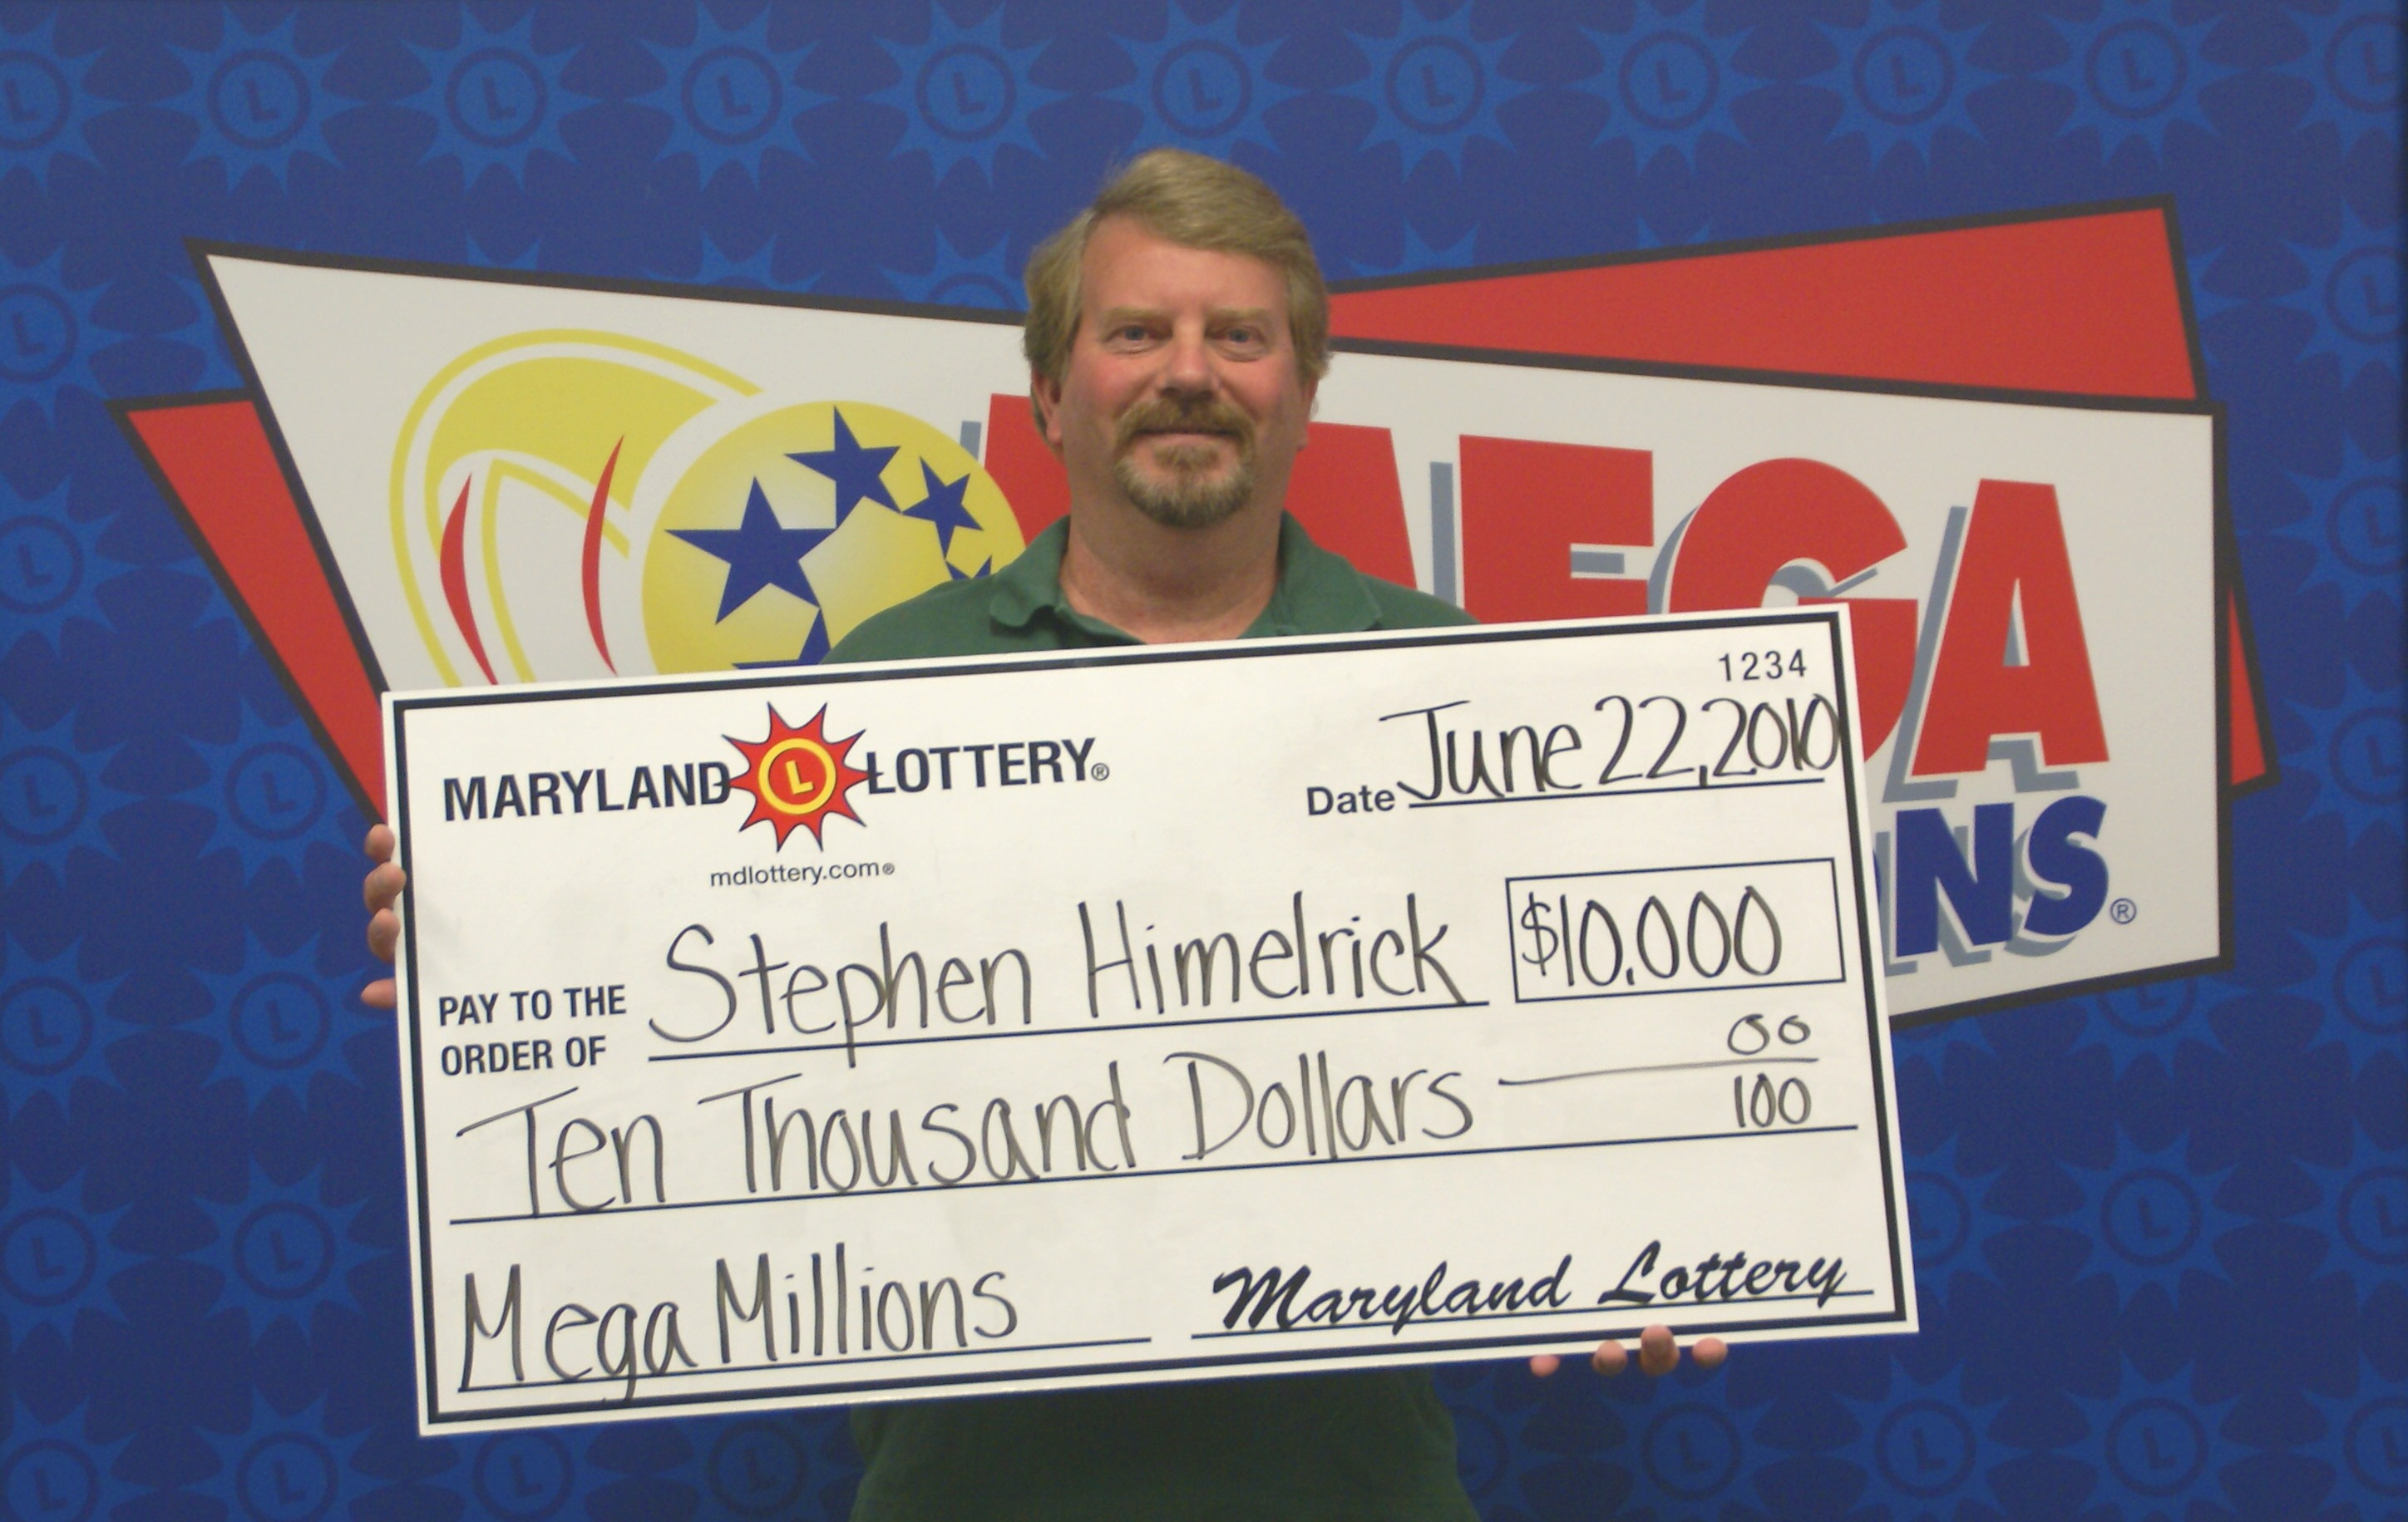 Mega Millions Win Comes At Perfect Time For Chester Man